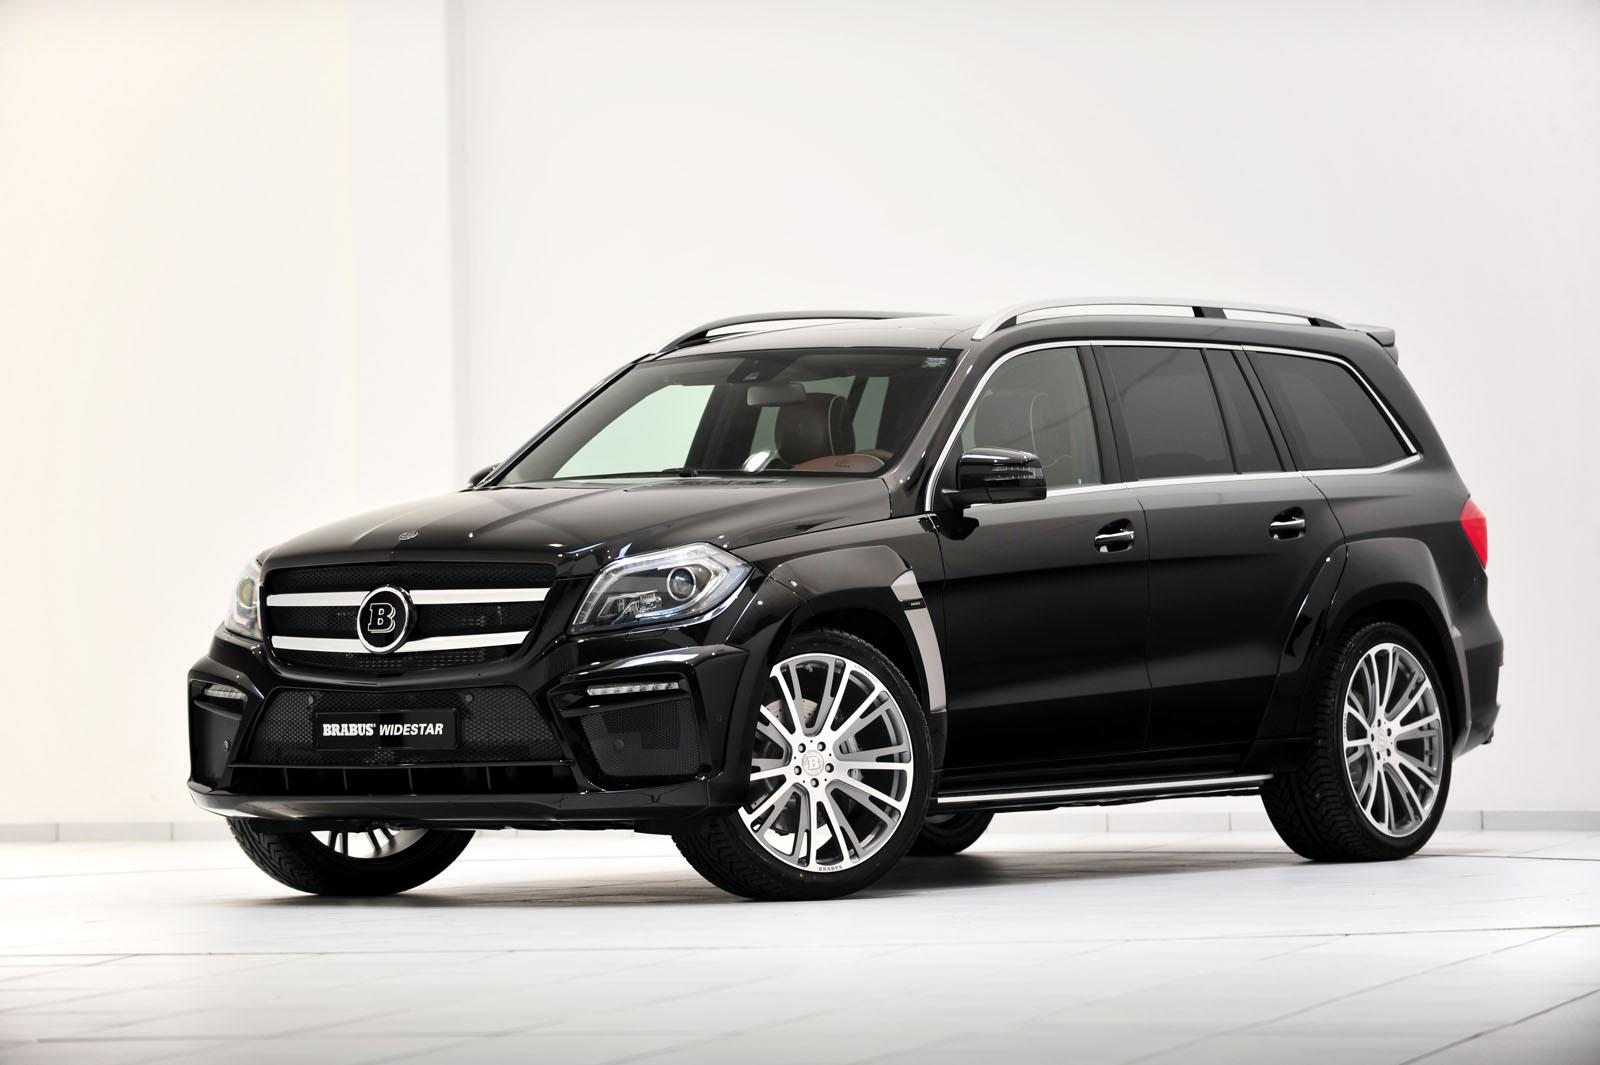 BRABUS B63 - 620 WIDESTAR based on Mercedes GL 63 AMG